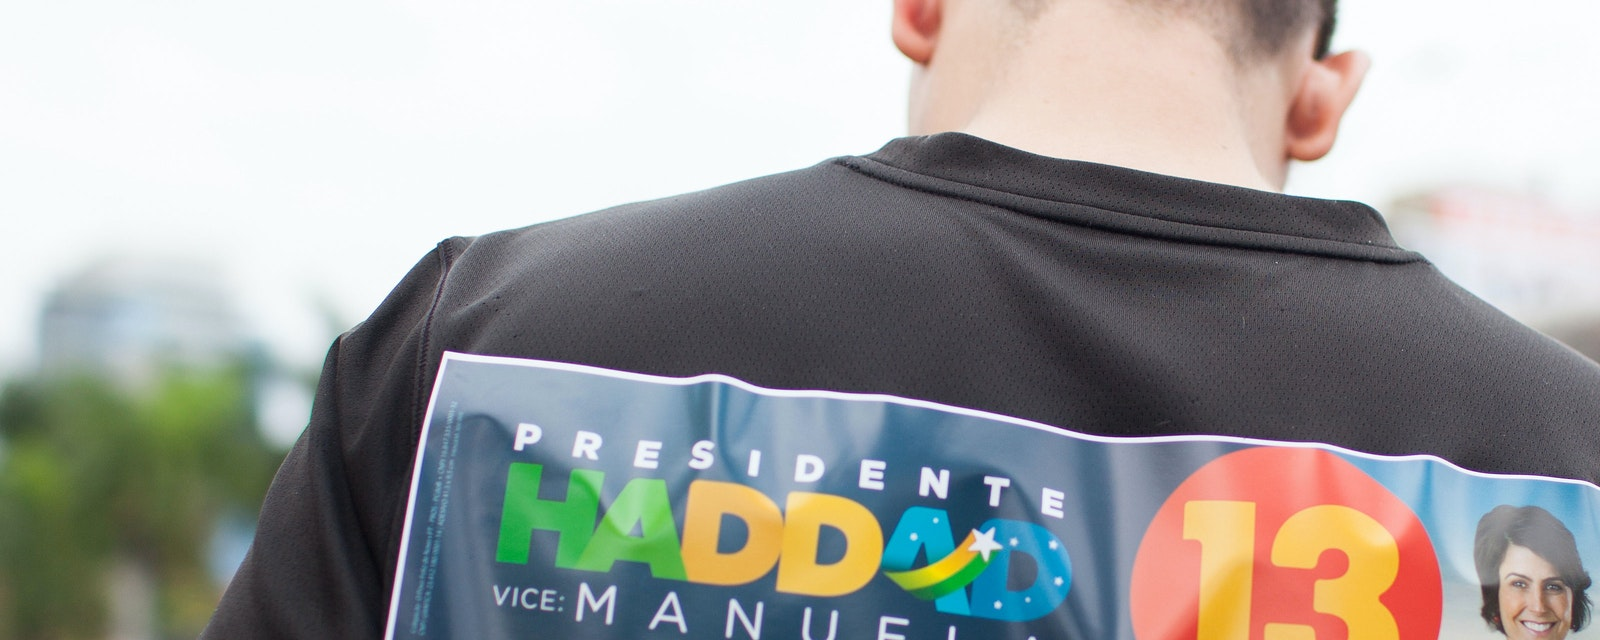 Man with Haddad's sticker on the back of his shirt